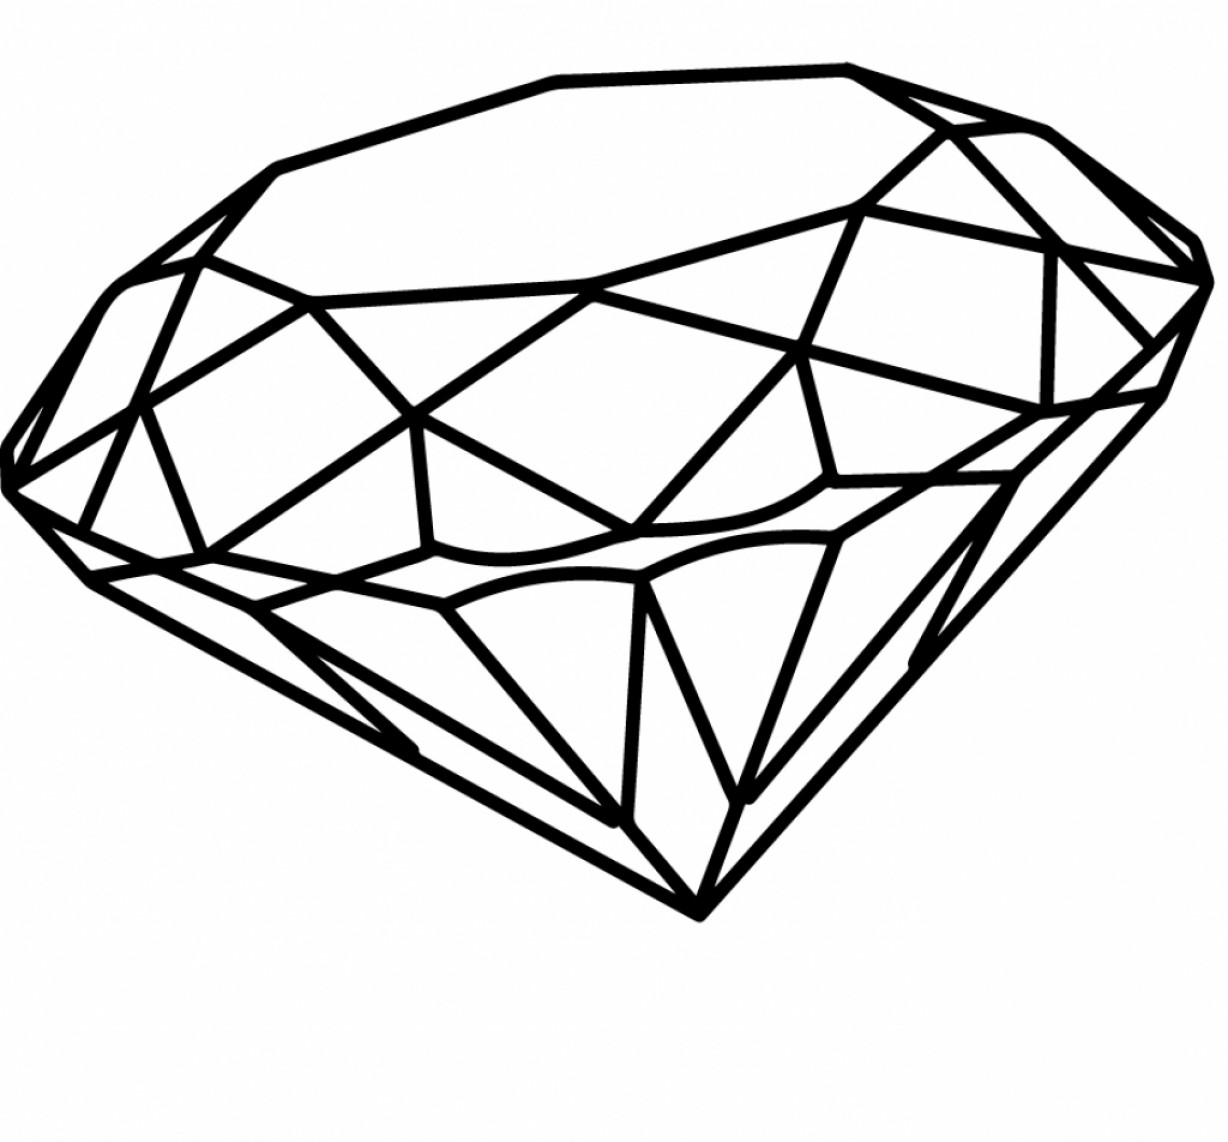 1228x1142 Heart Shaped Diamond D Icon Gm Oblacoder